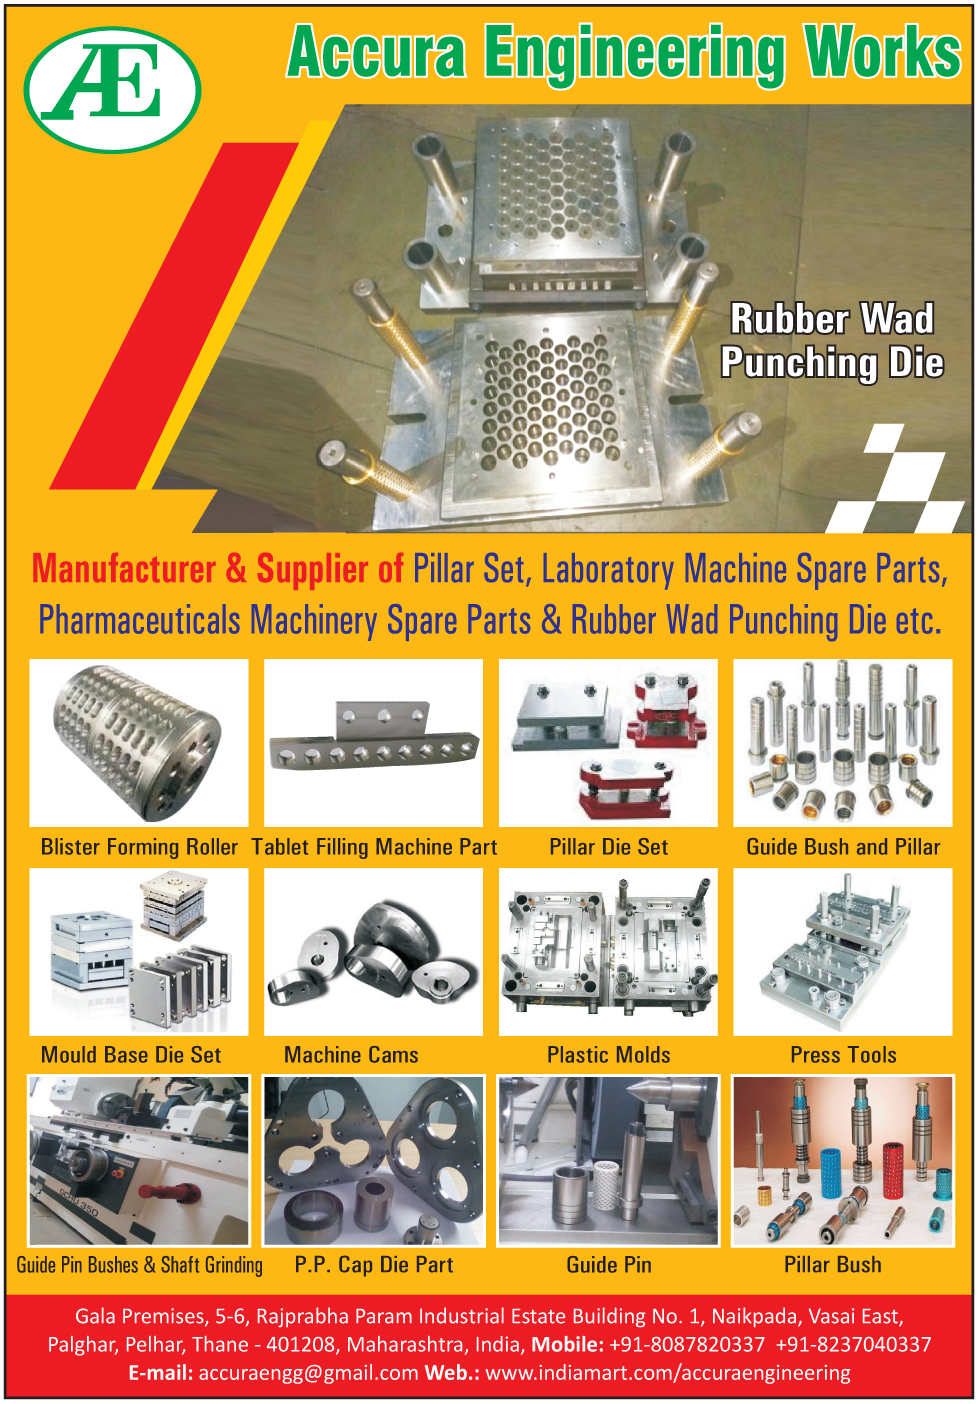 Rubber Wad Punching Dies, Pillar Sets, Laboratory Machine Spare Parts, Pharmaceuticals Machine Spare Parts, Rubber Wad Punching Dies, Blister Forming Rollers, Tablet Filling Machine Part, Pillar Die Sets, Guide Bush, Pillar, Mould Base Die Sets, Mold Base Die Sets, Machine Cams, Plastic Moulds, Plastic Molds, Press Tools, Guide Pin Bushes, Shaft Grinding, PP Cap Die Parts, Guide Pins, Pillar Bushes